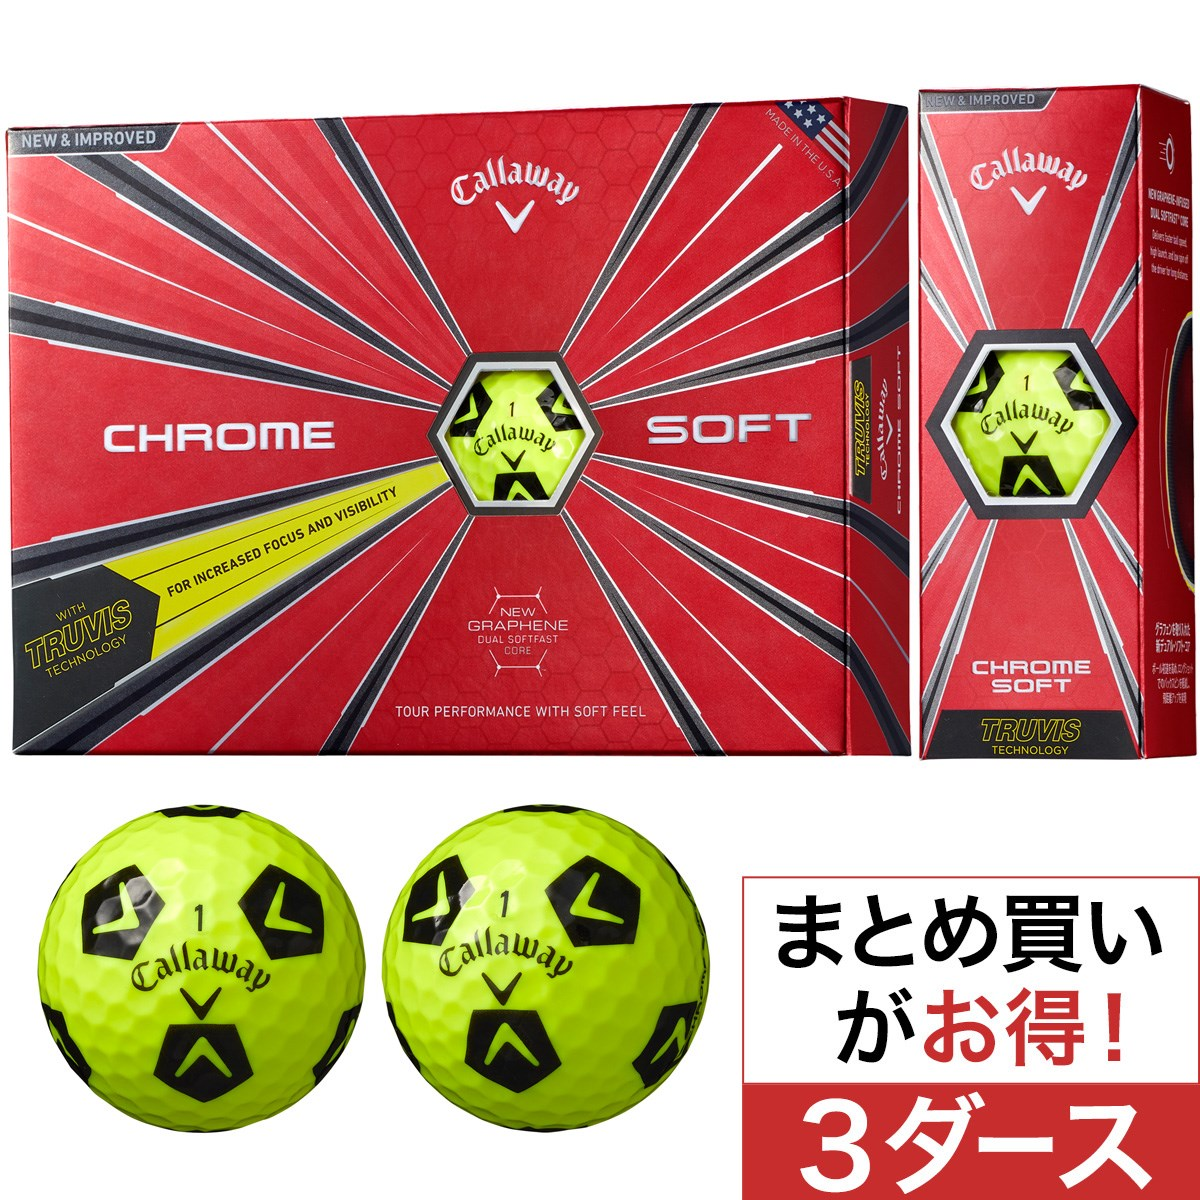 CHROME SOFT TRUVIS ボール 3ダースセット